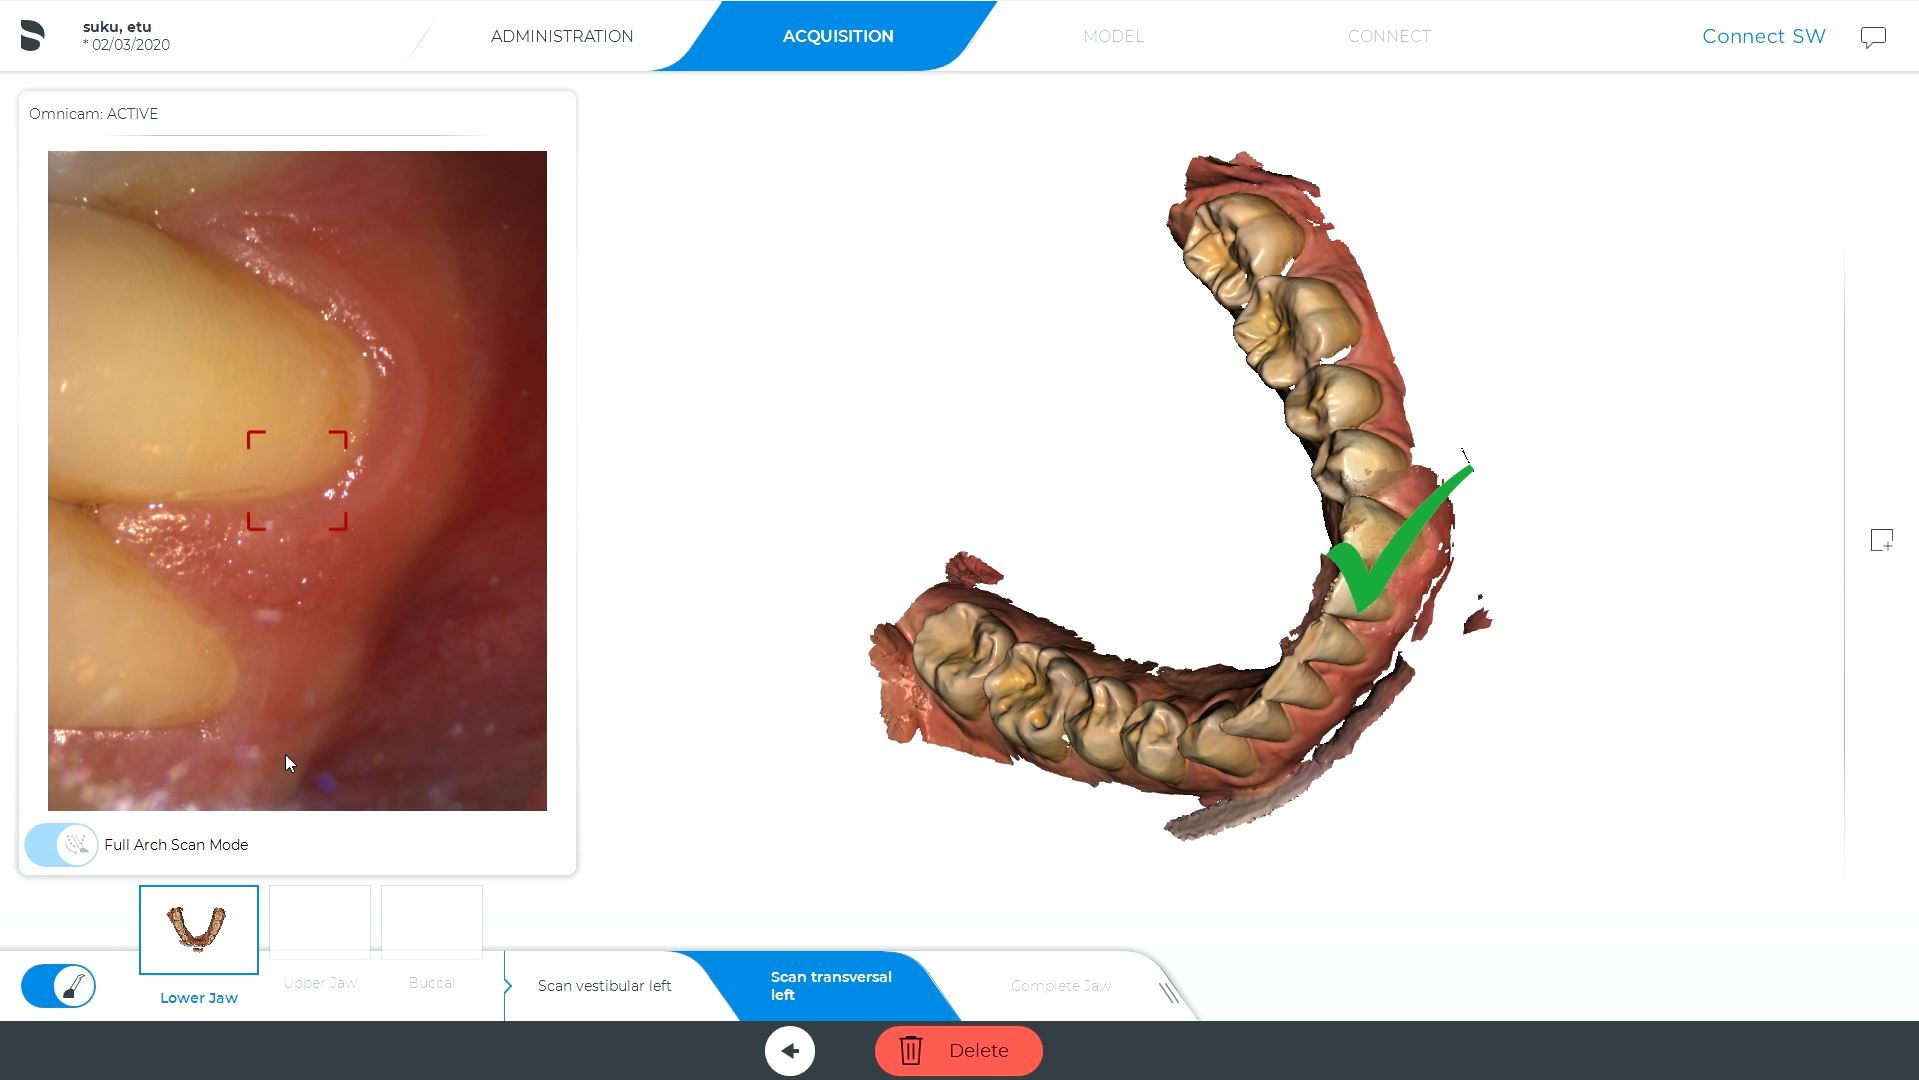 Invisalign jäljennös – Connect SW – CEREC Omnicam